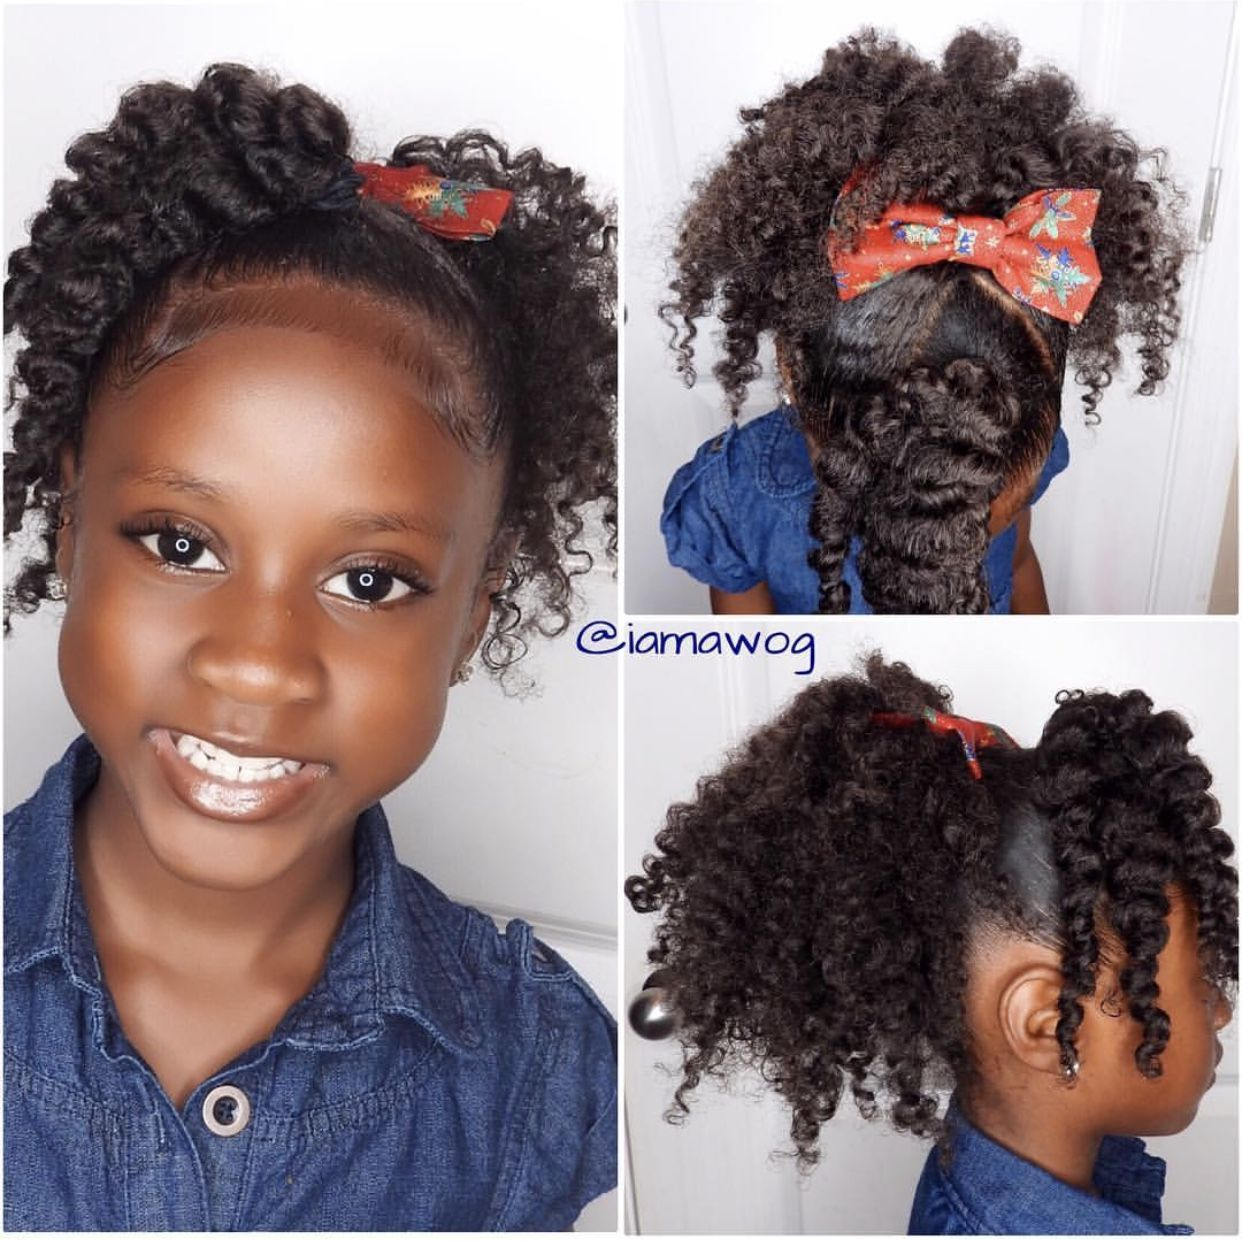 Christmas Natural Hairstyles For Kids Holiday Hair Shop Www Naturalhairshop Com For Hair Acces Kids Hairstyles Natural Hairstyles For Kids Natural Hair Styles